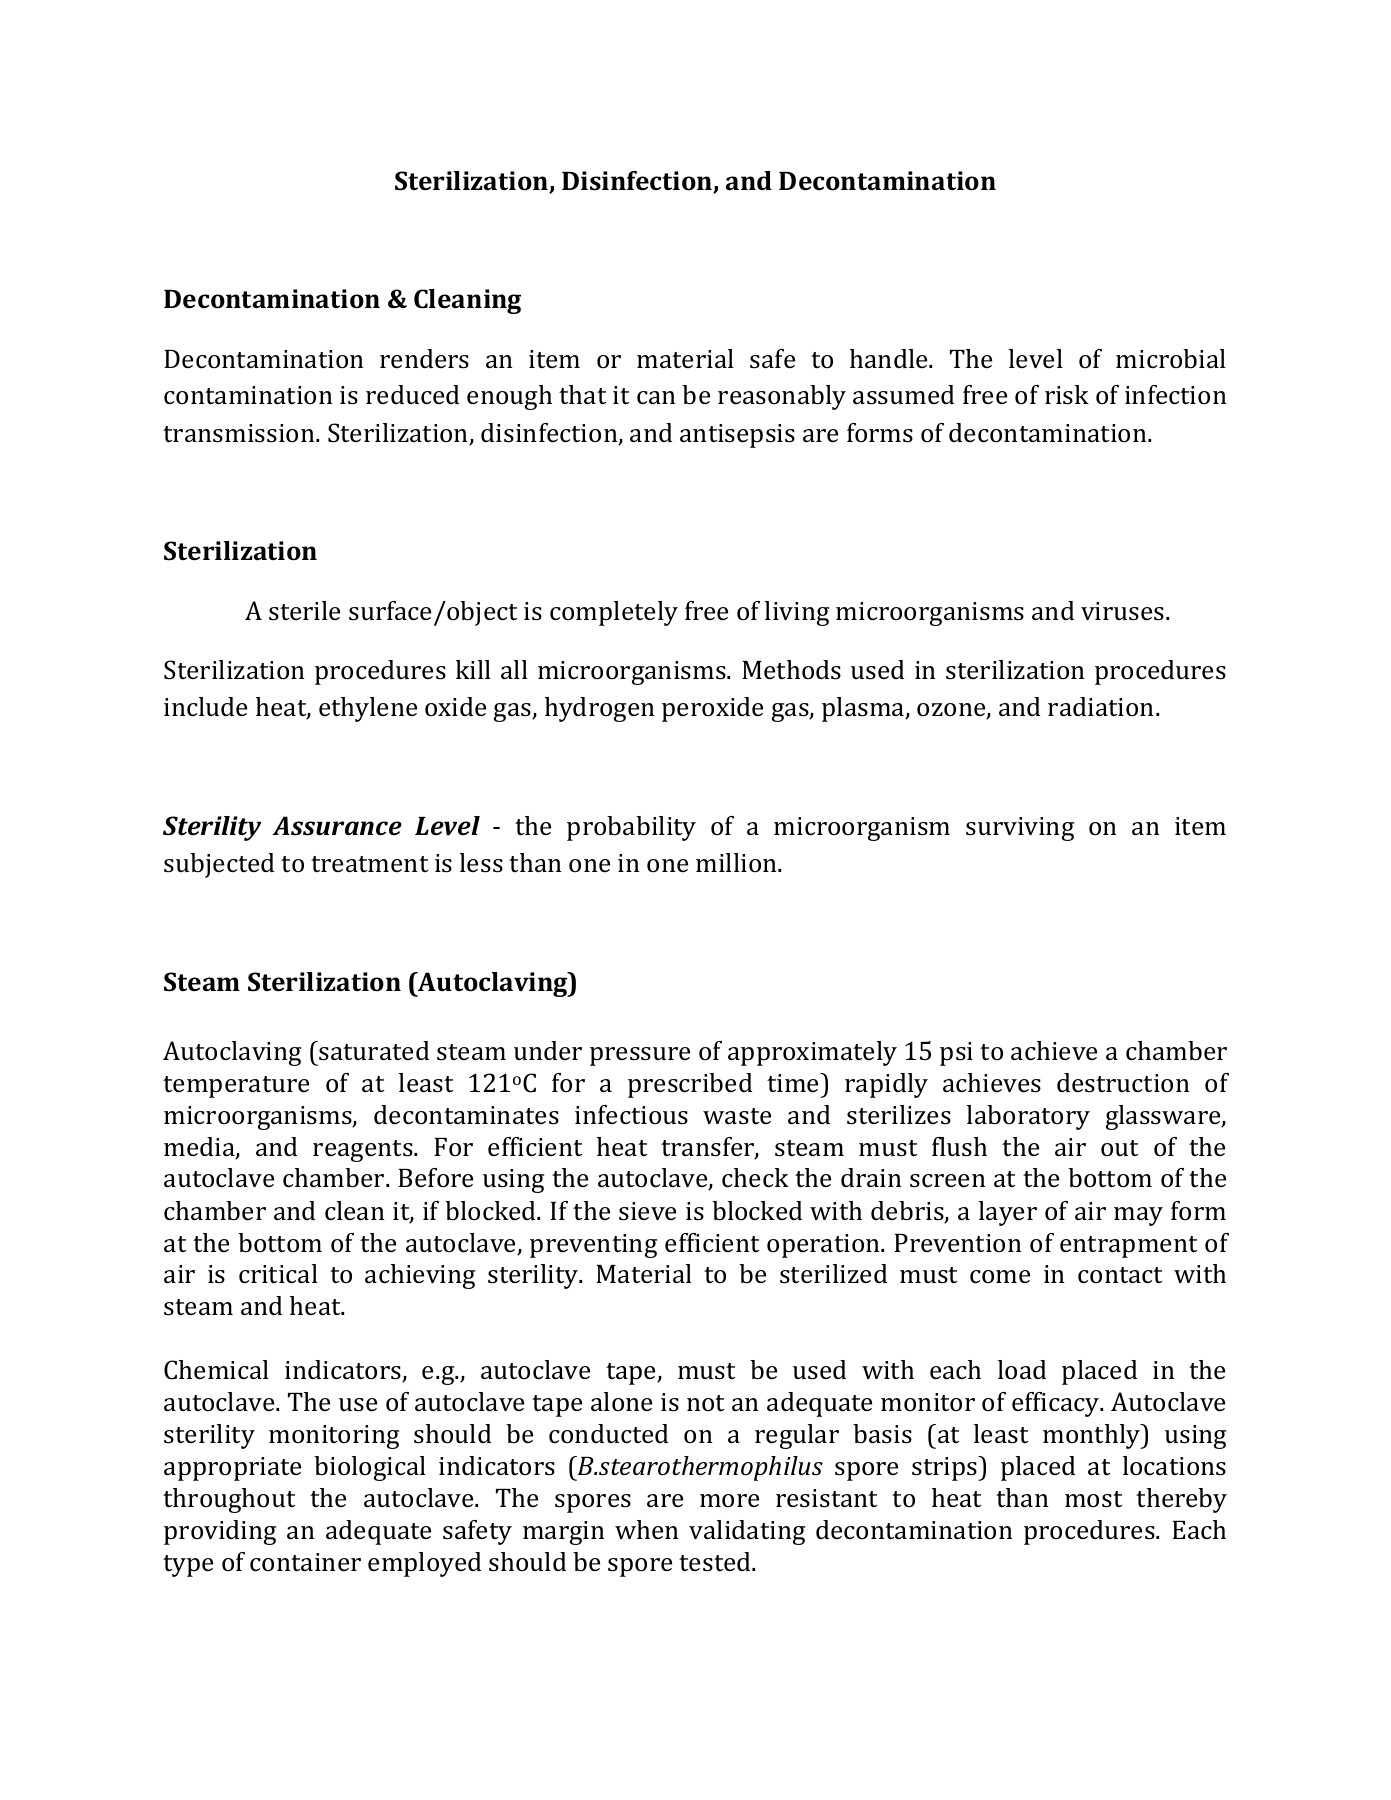 How to write a sterilization and disinfection short one page essay